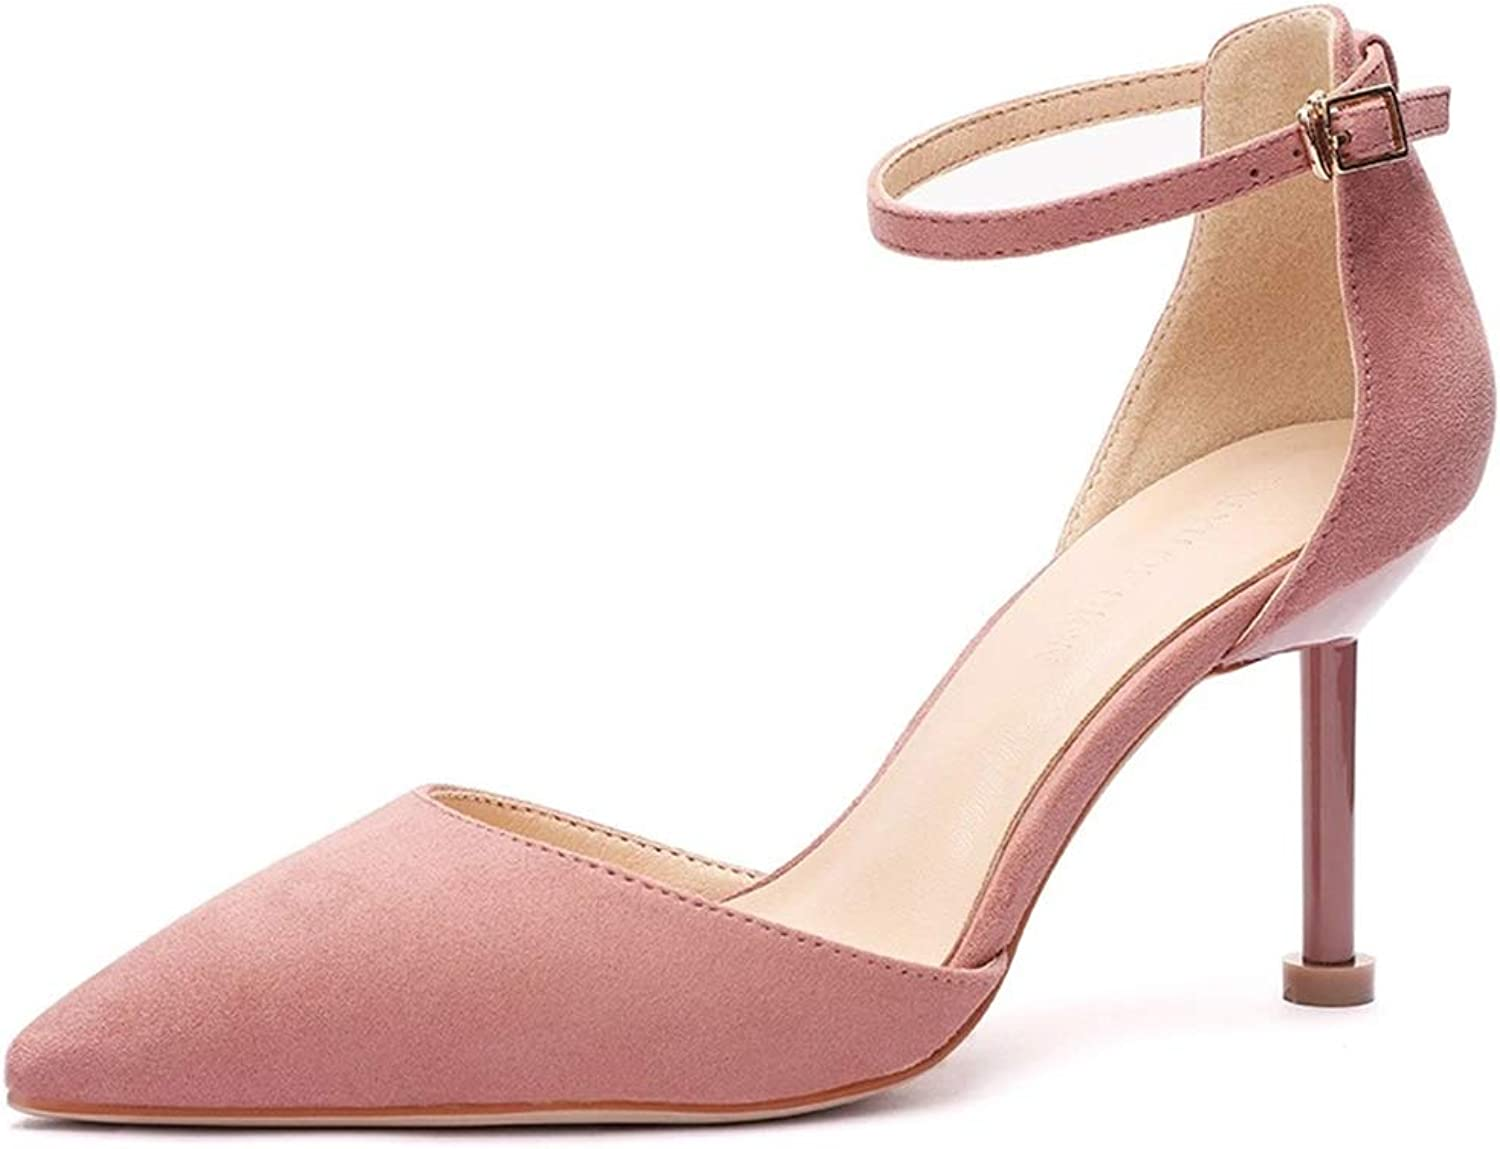 CHENSF Women's Pointed Toe High Heel Ankle Strap shoes